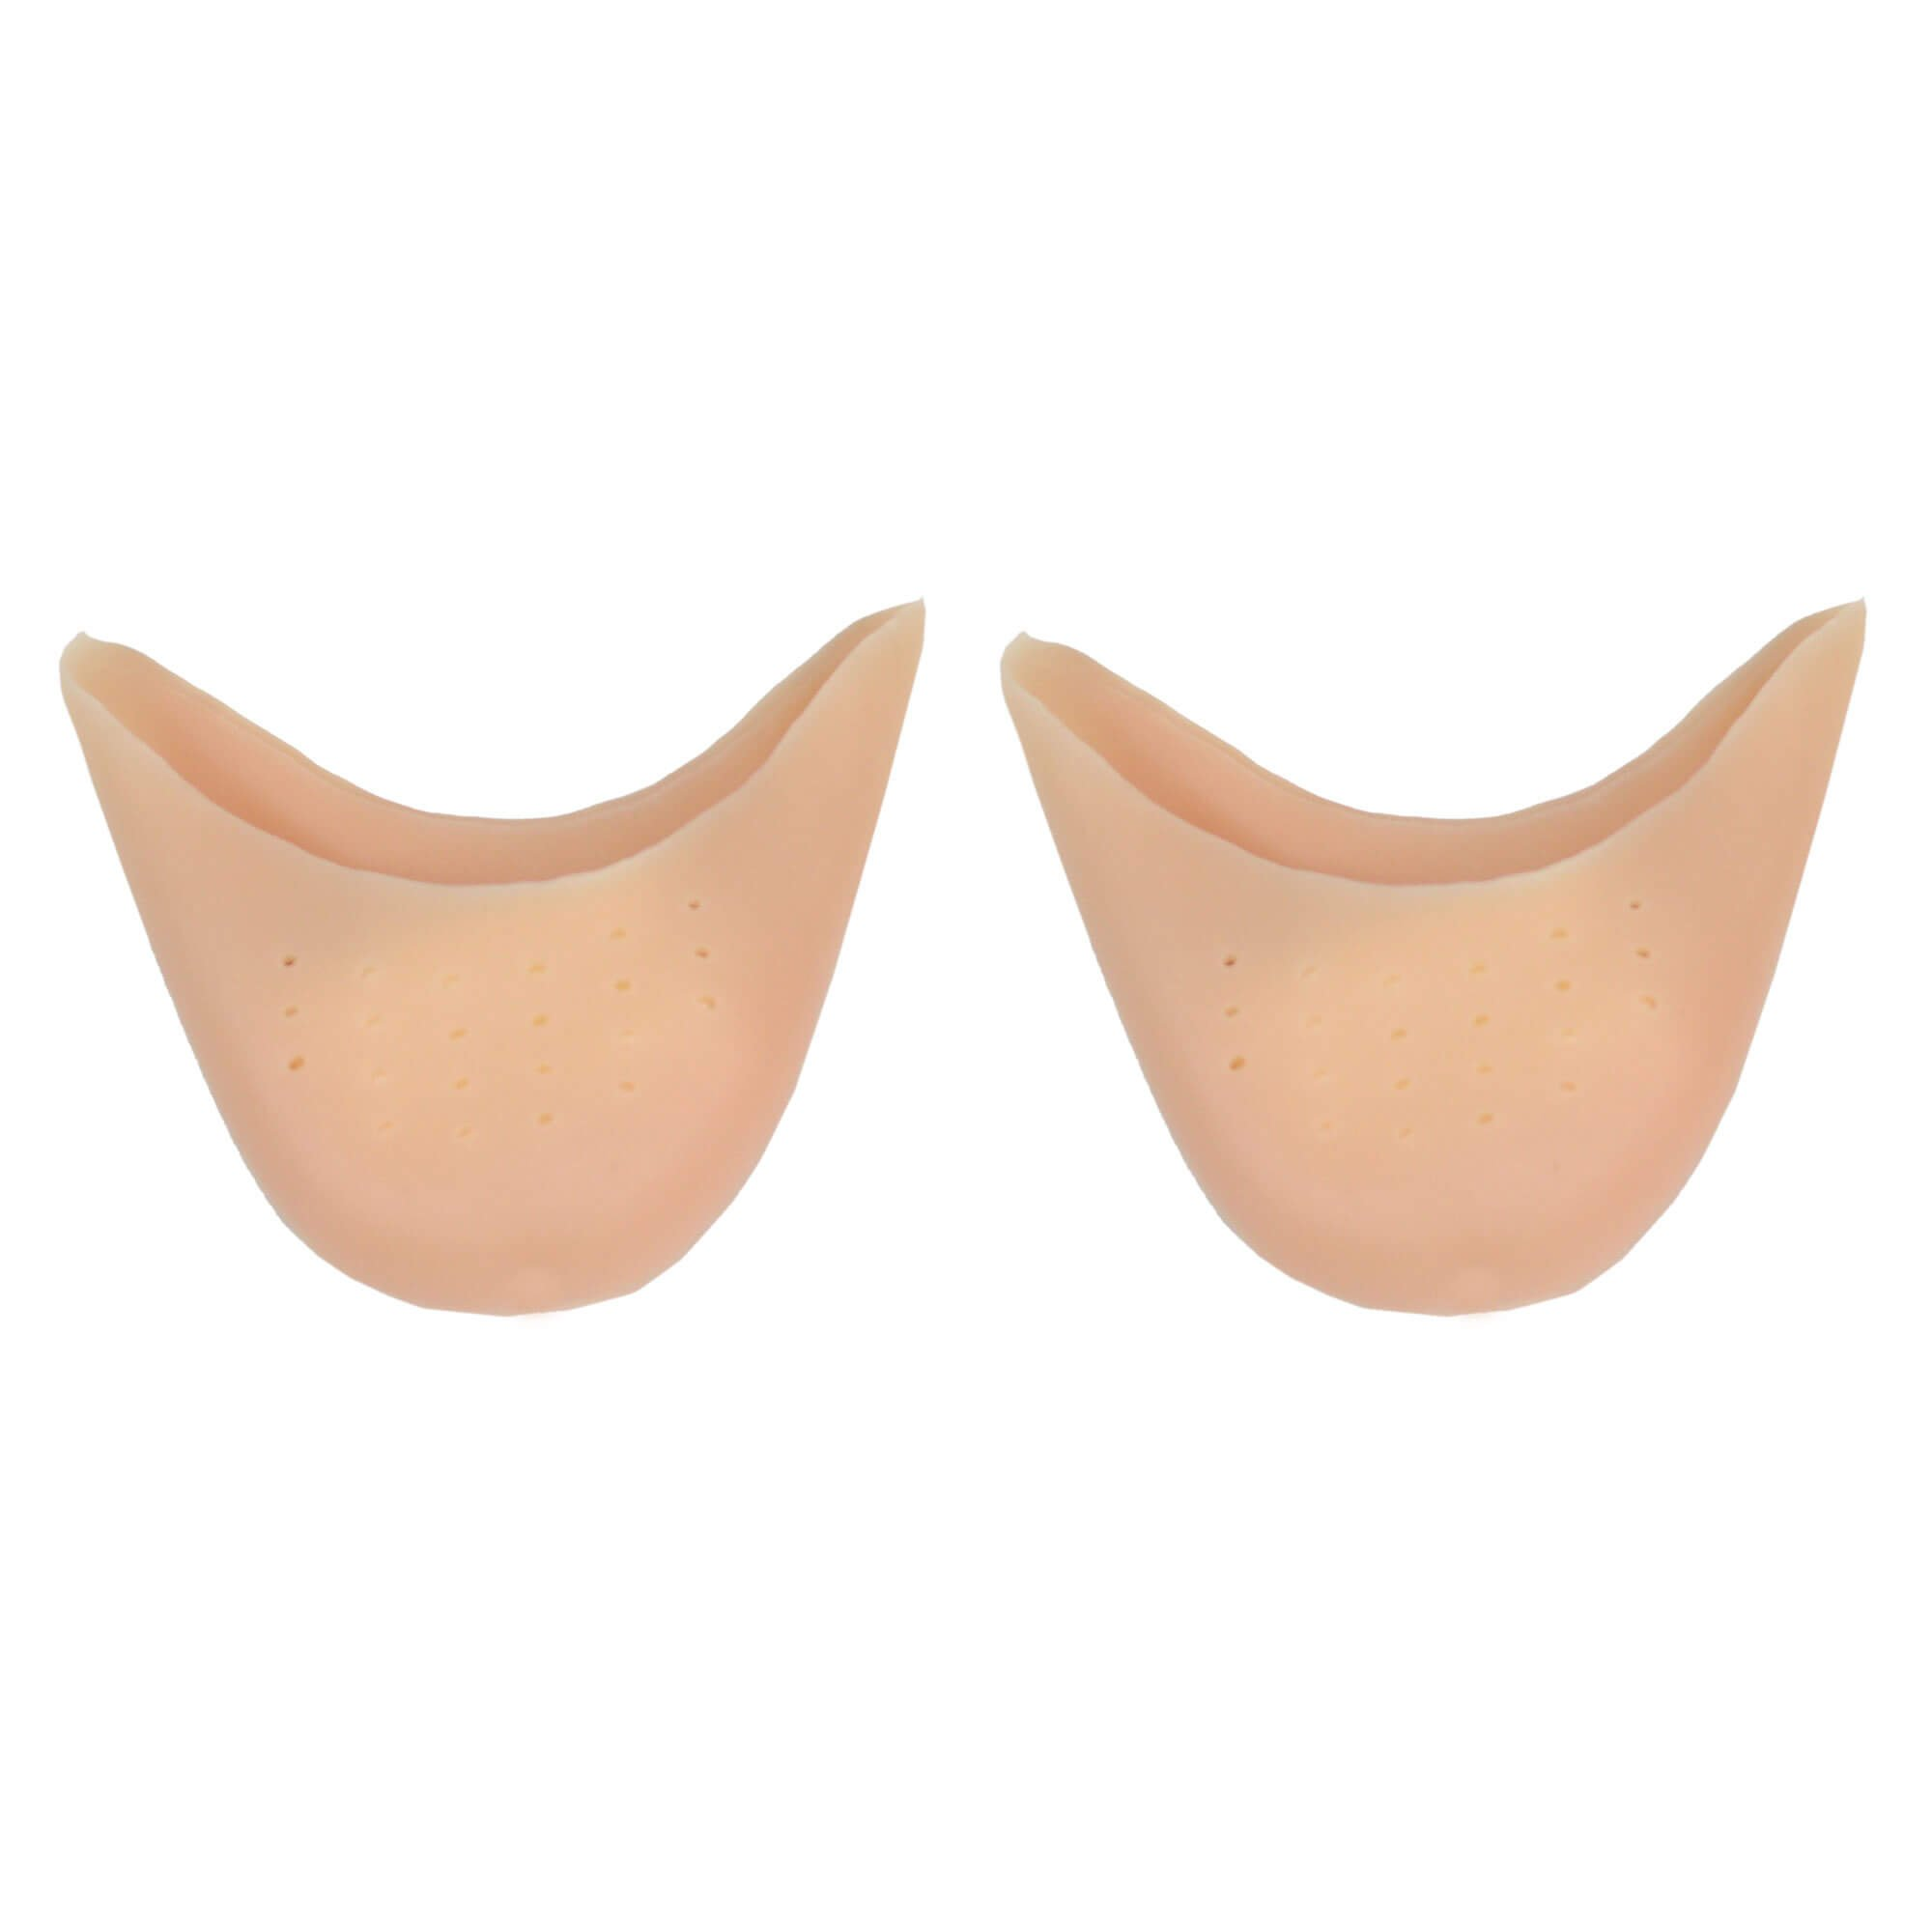 danzcue 1 pair soft ballet pointe dance toe pads with breathable hole